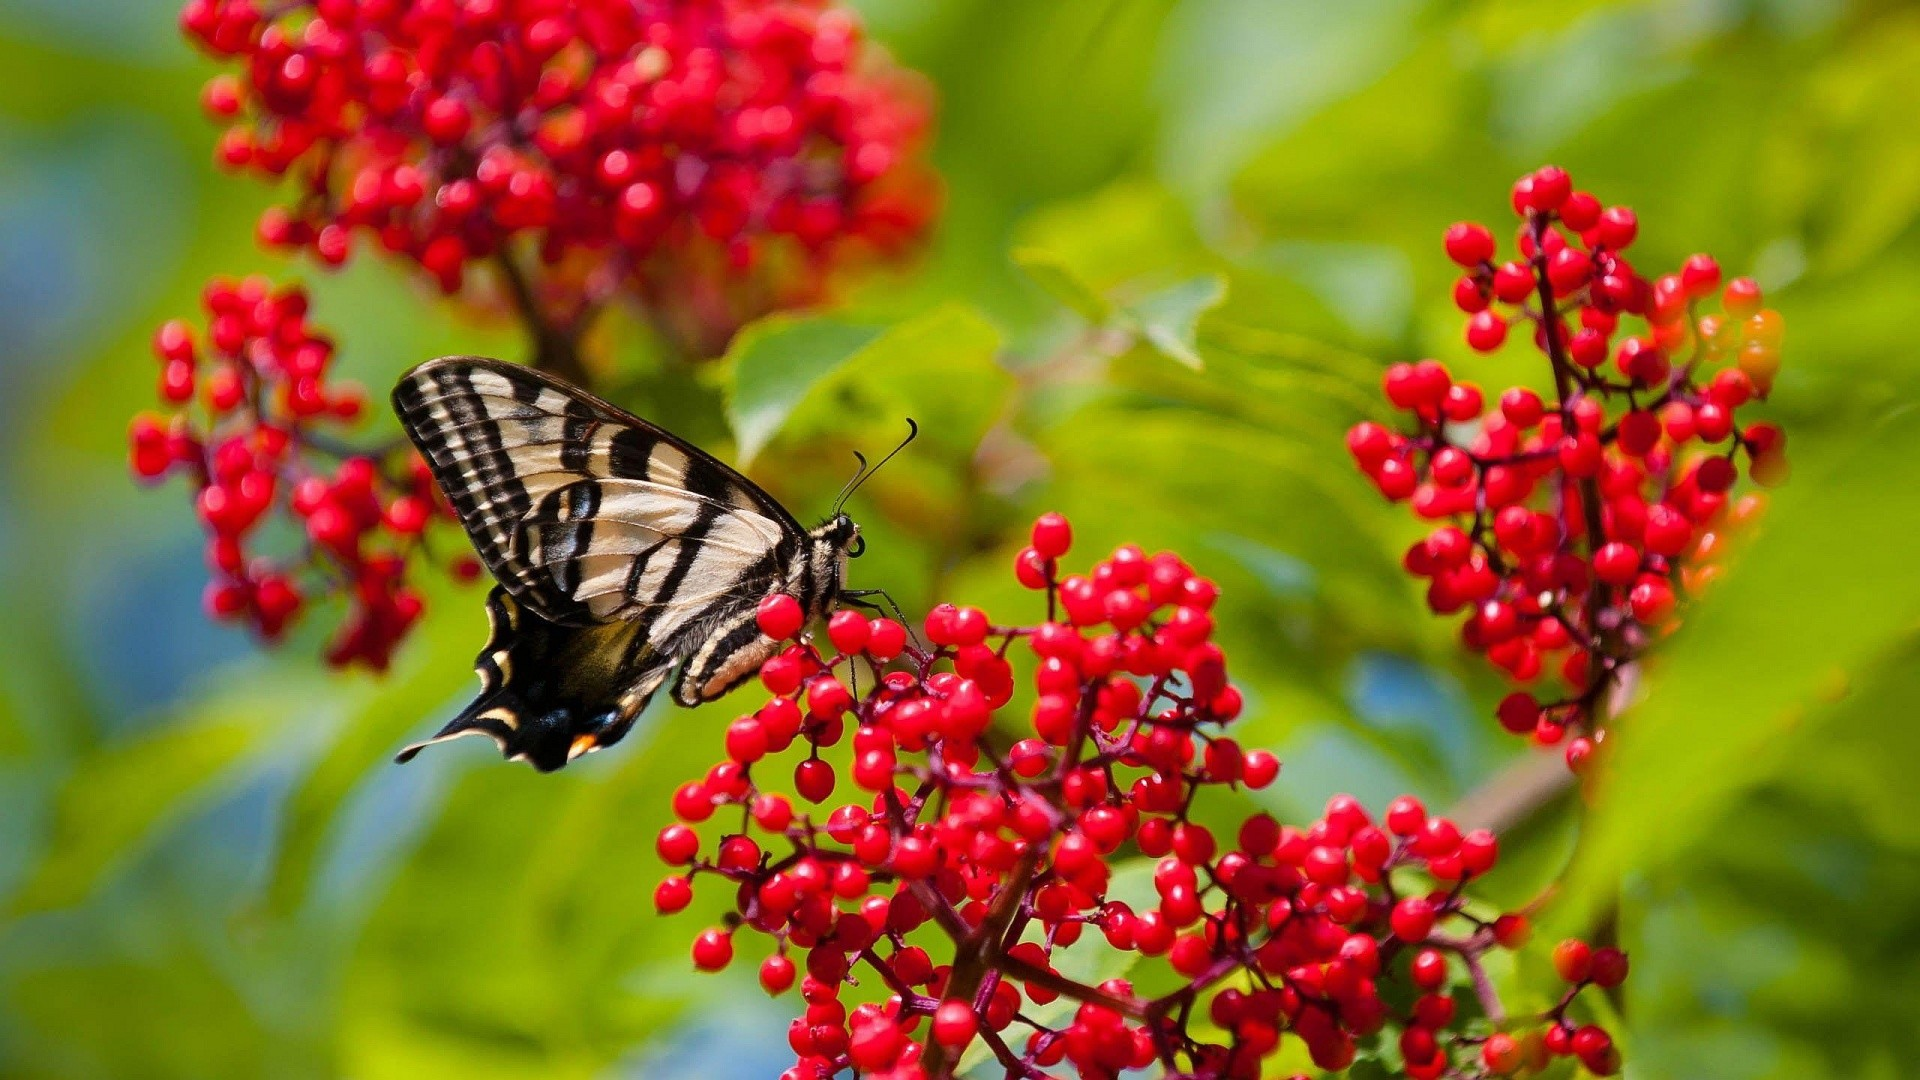 Butterflies Wallpapers Hd Download: Beautiful Butterflies And Flowers Wallpapers (56+ Images